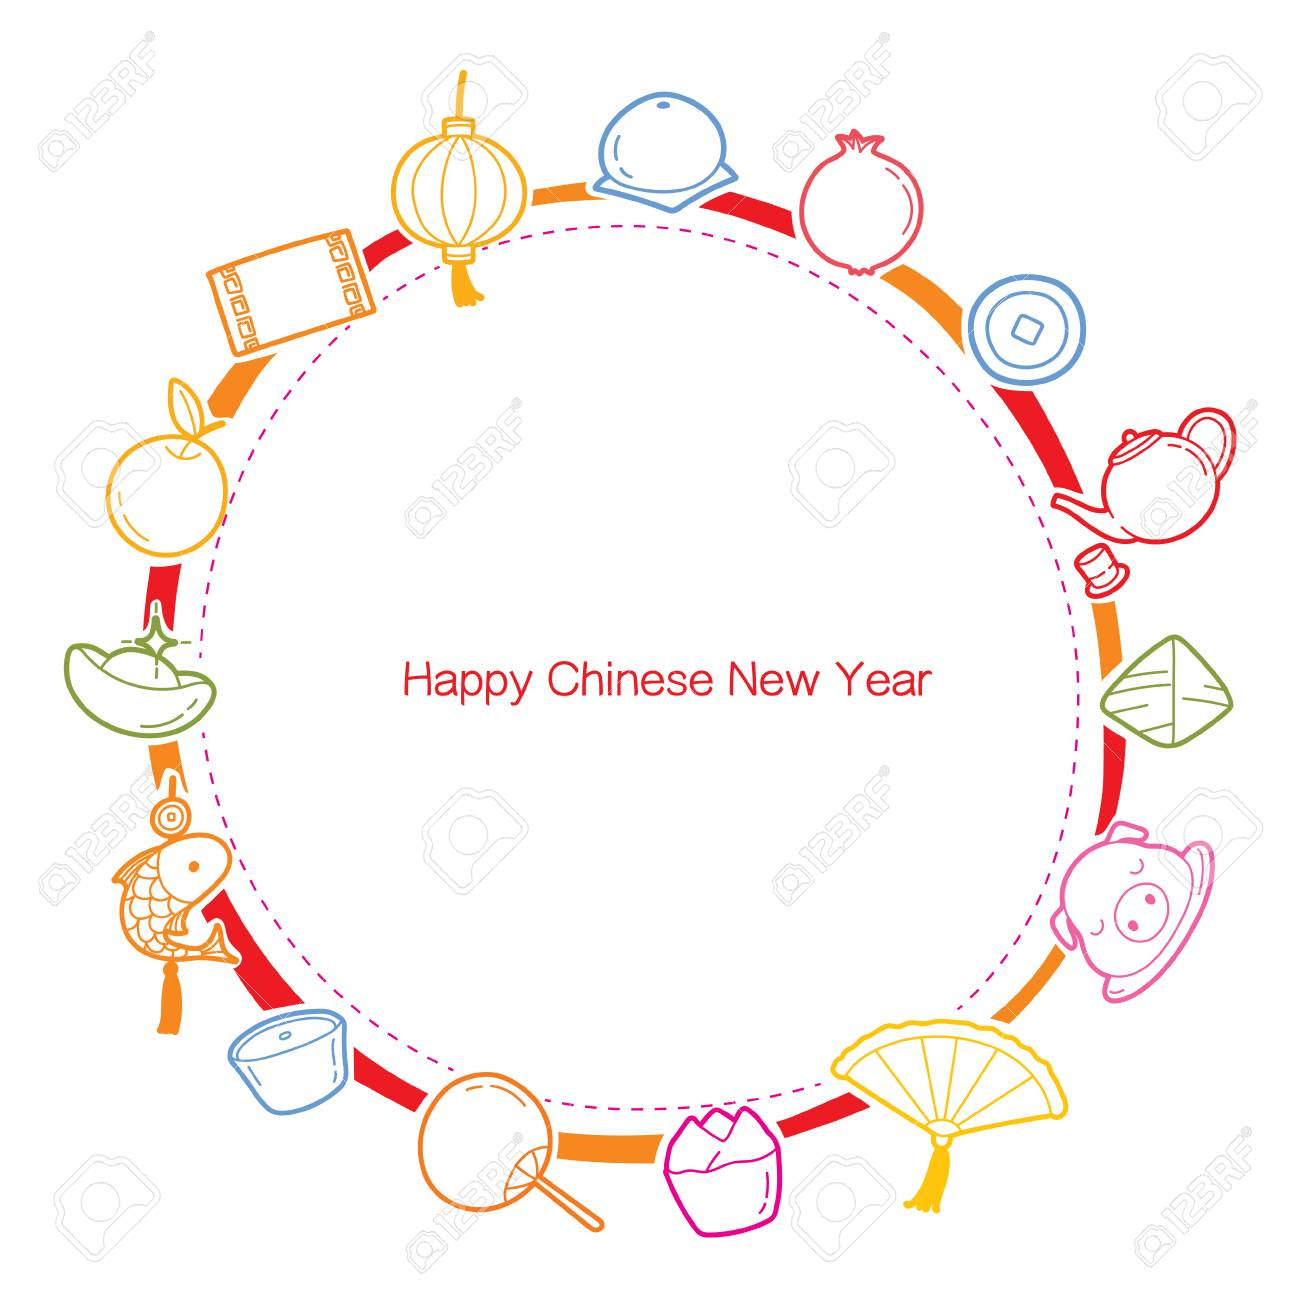 Chinese new year outline icons set on round frame traditional chinese new year outline icons set on round frame traditional celebration china happy jeuxipadfo Image collections